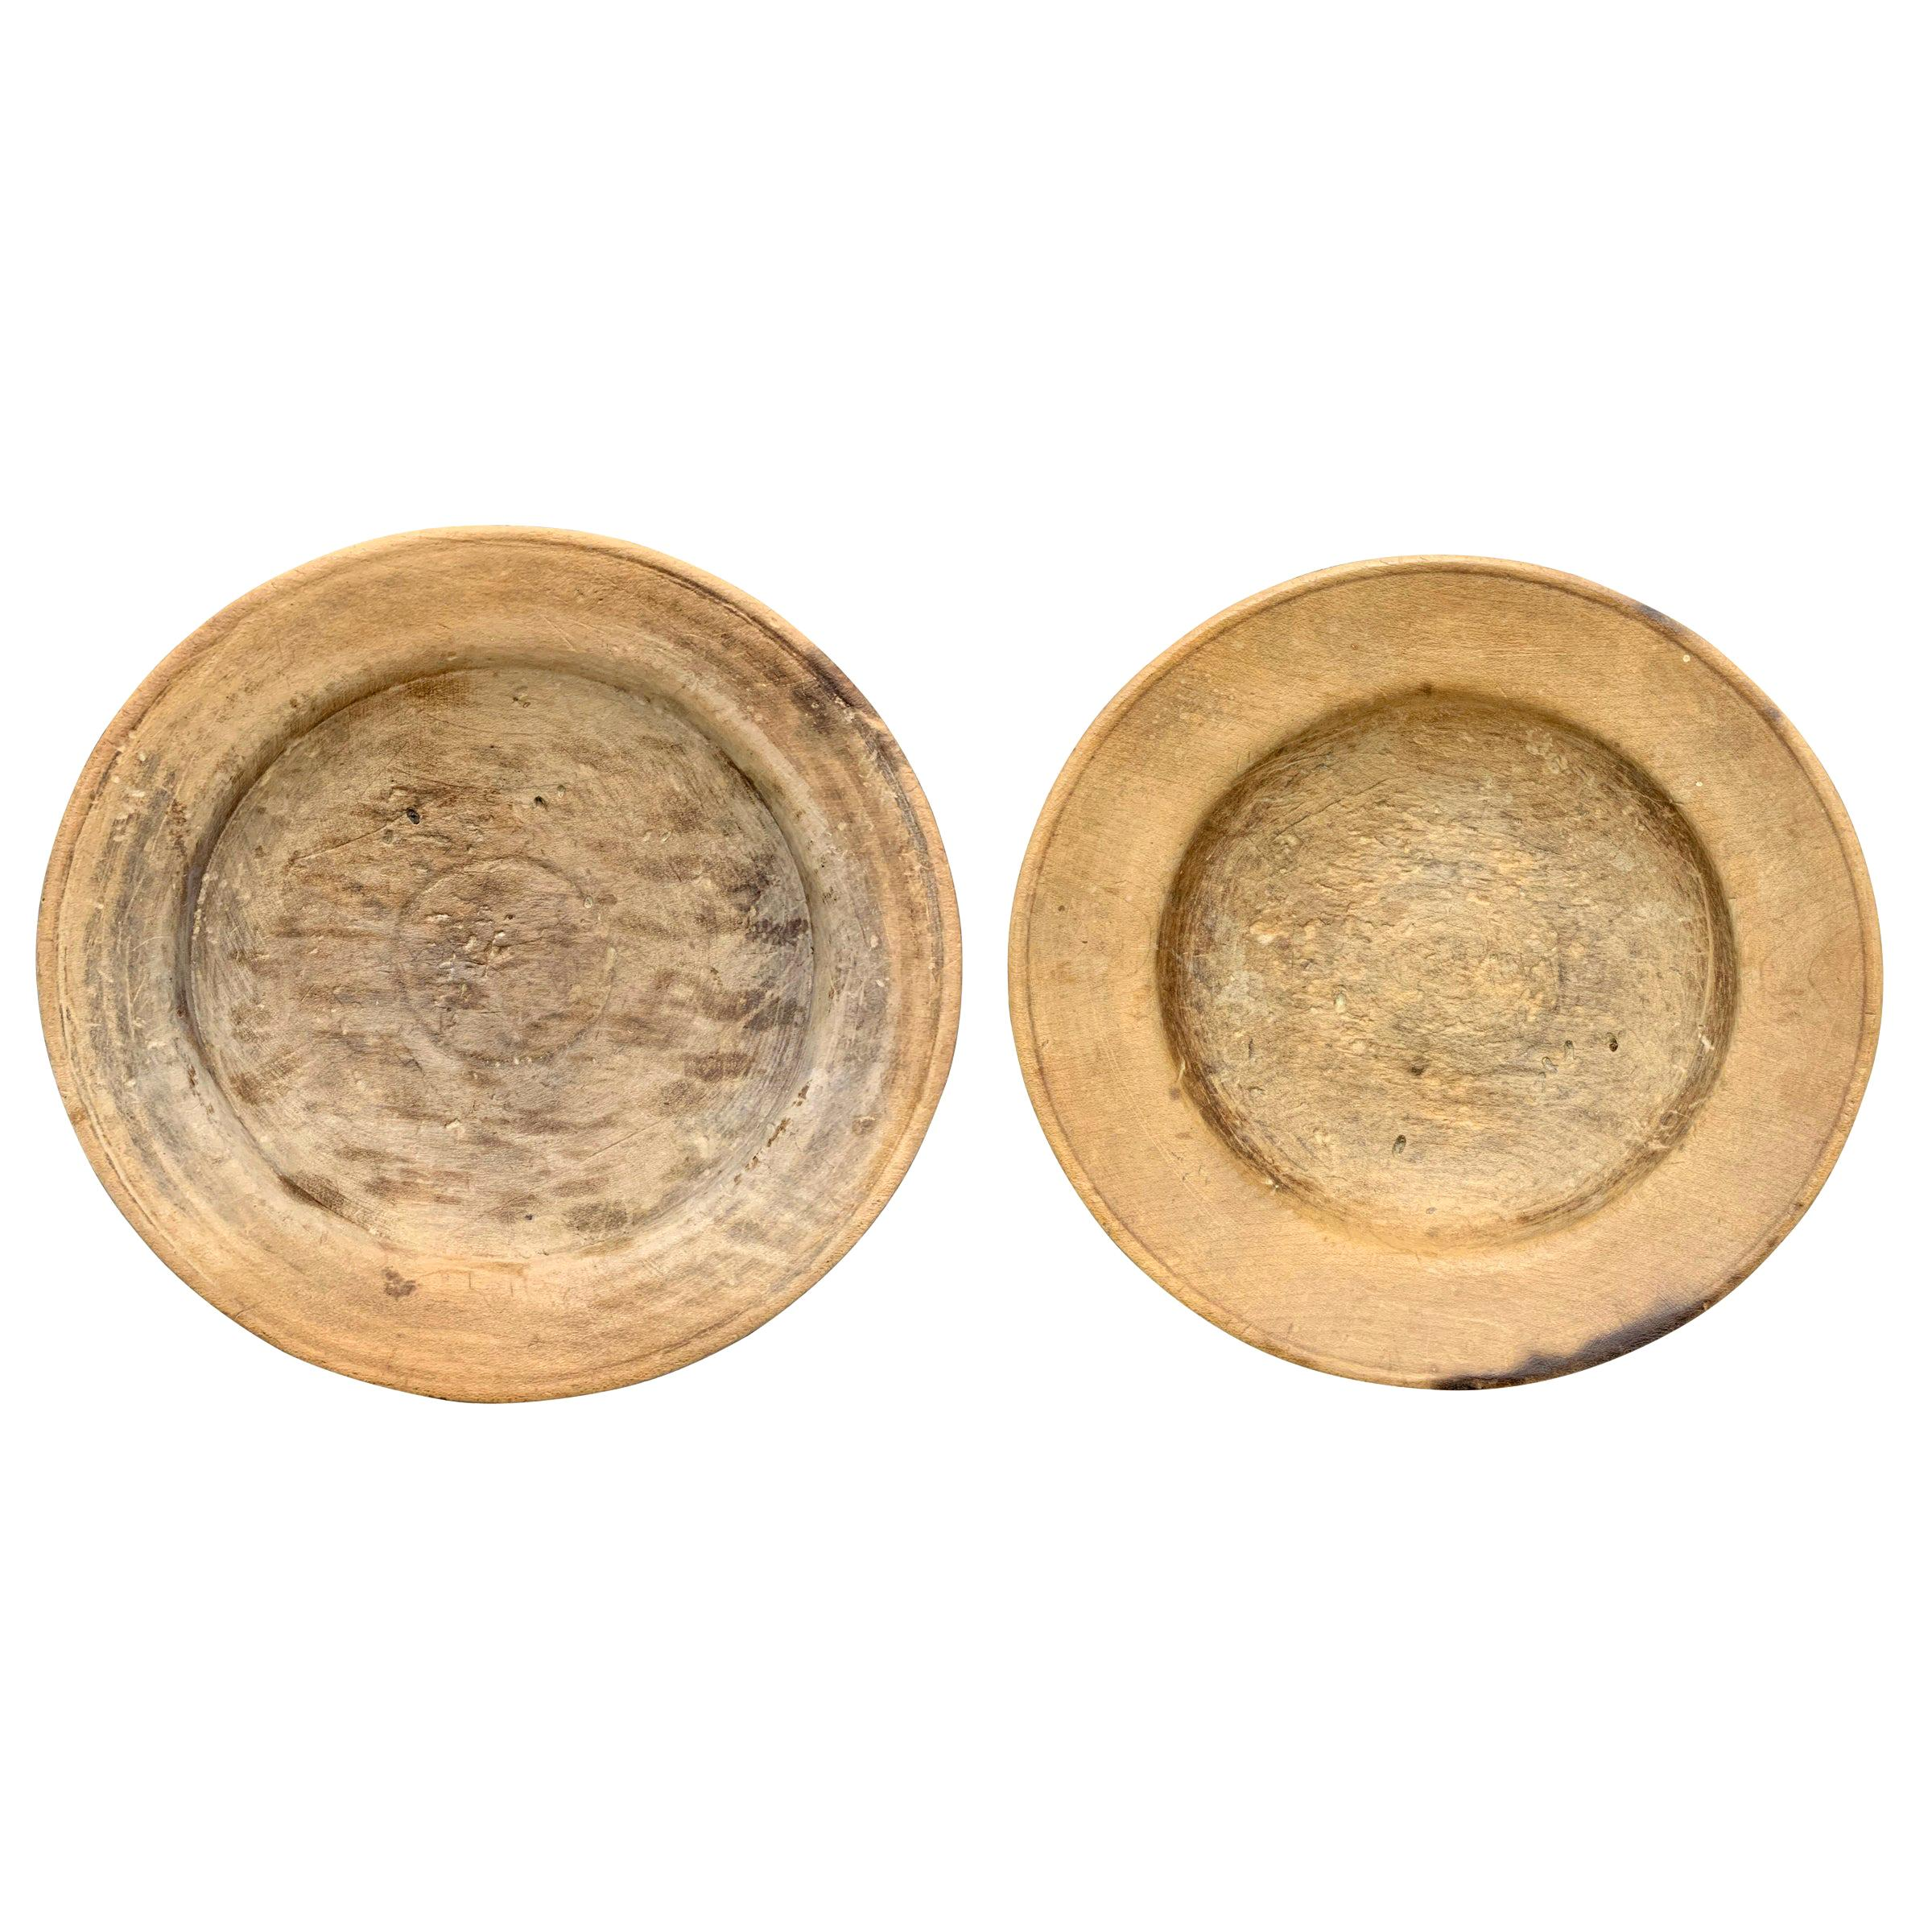 Pair of 19th Century Italian Wood Bowls